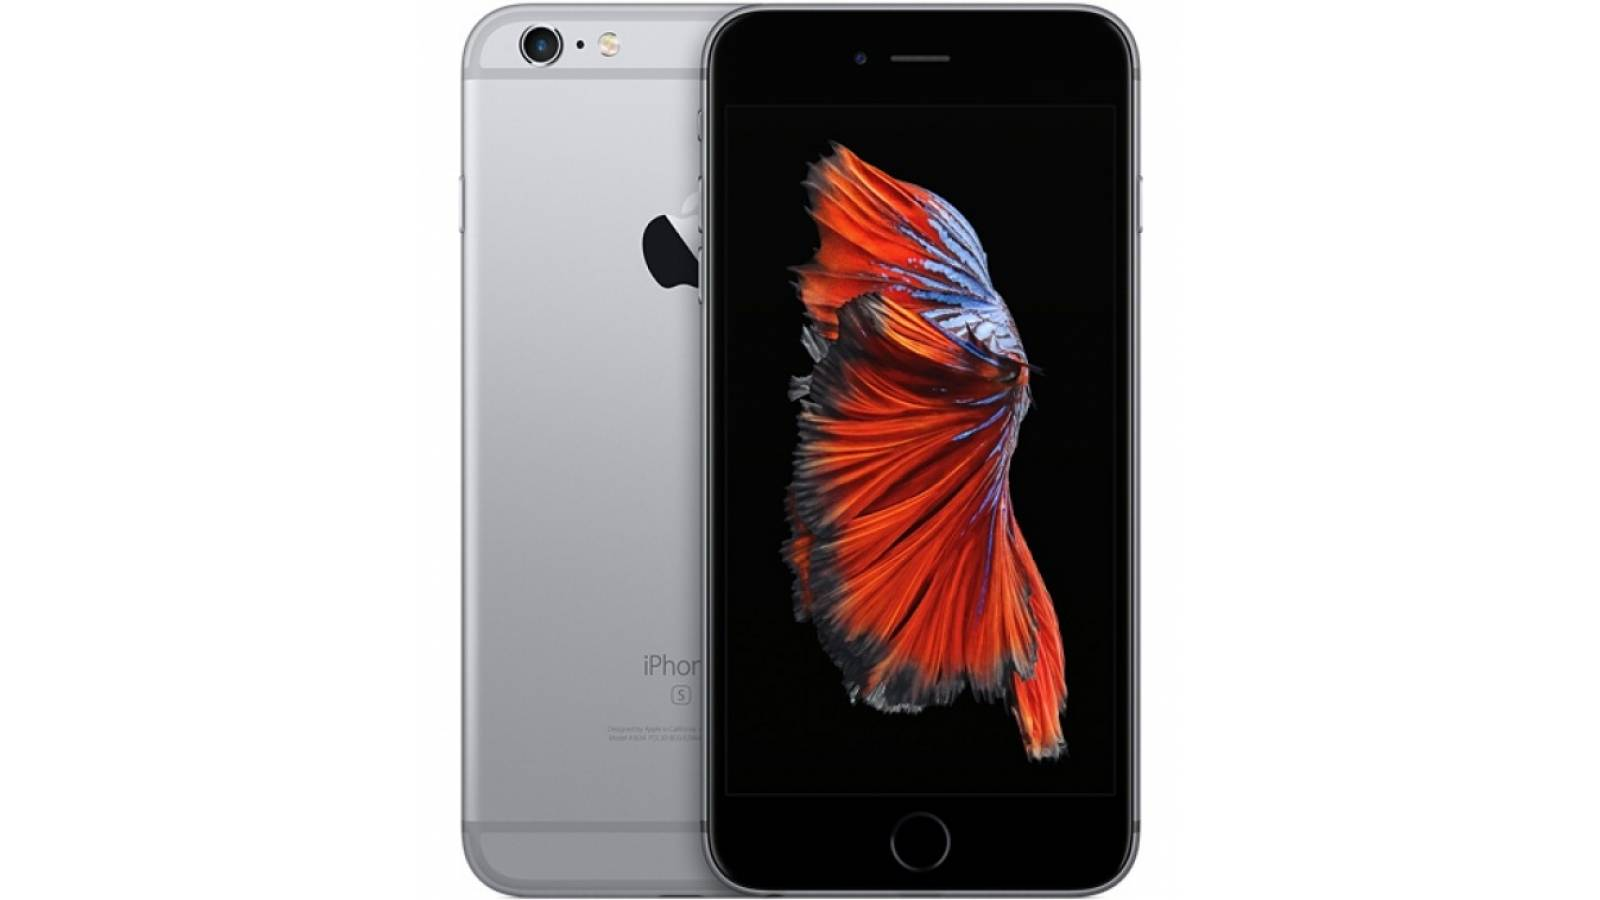 Apple iPhone 6S PLUS 128GB libre para Antel/Claro/Movistar